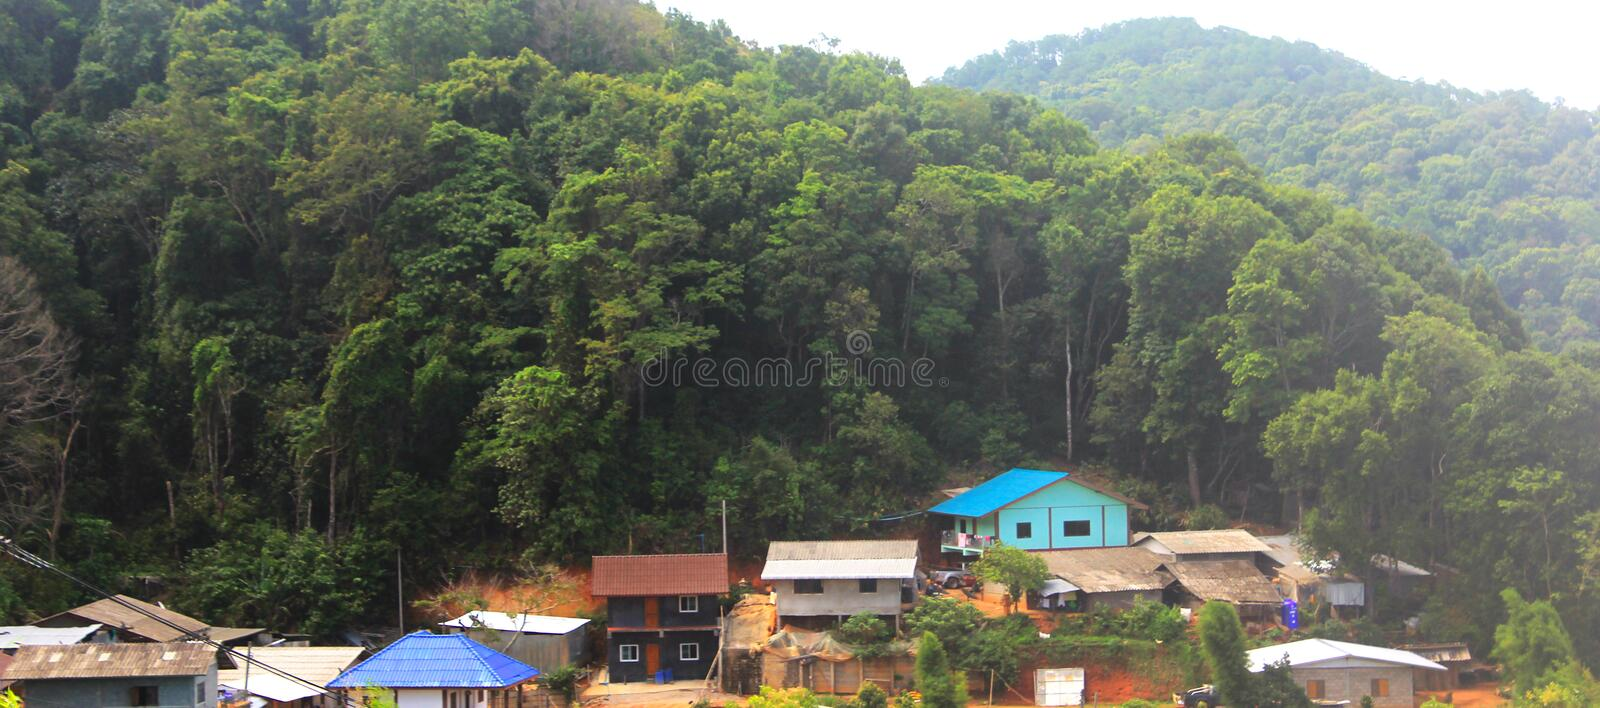 Village in the valley Beautiful views, beautiful traditional mountain huts and peaks in the bright morning light - image royalty free stock photo